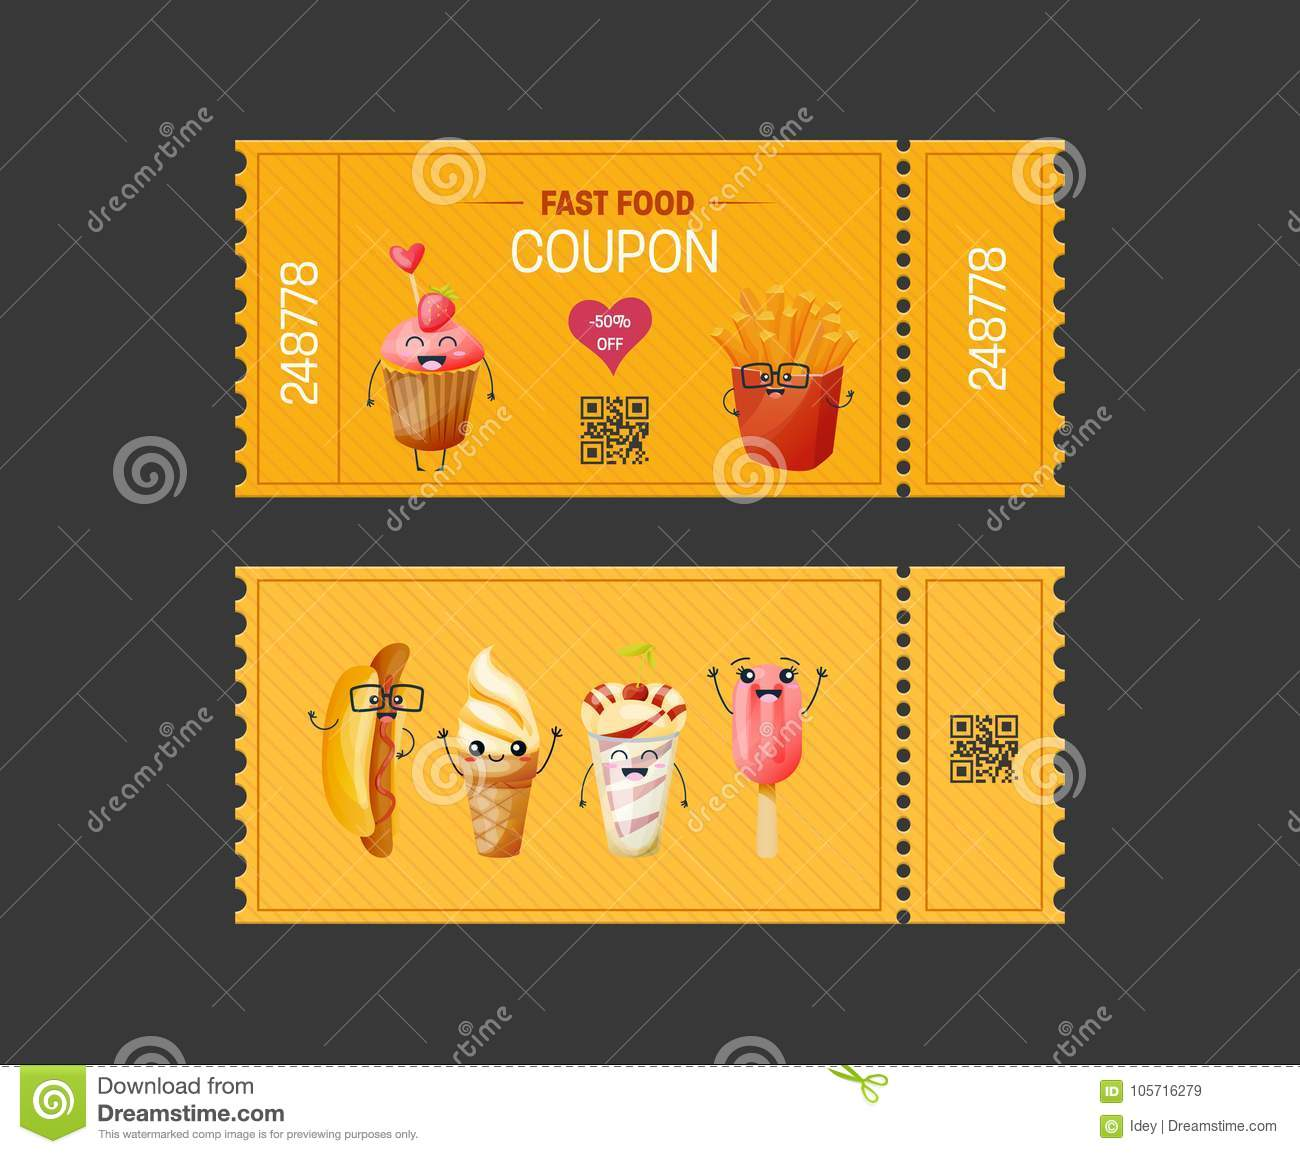 coupon fast food gift voucher ticket card coupon food drink